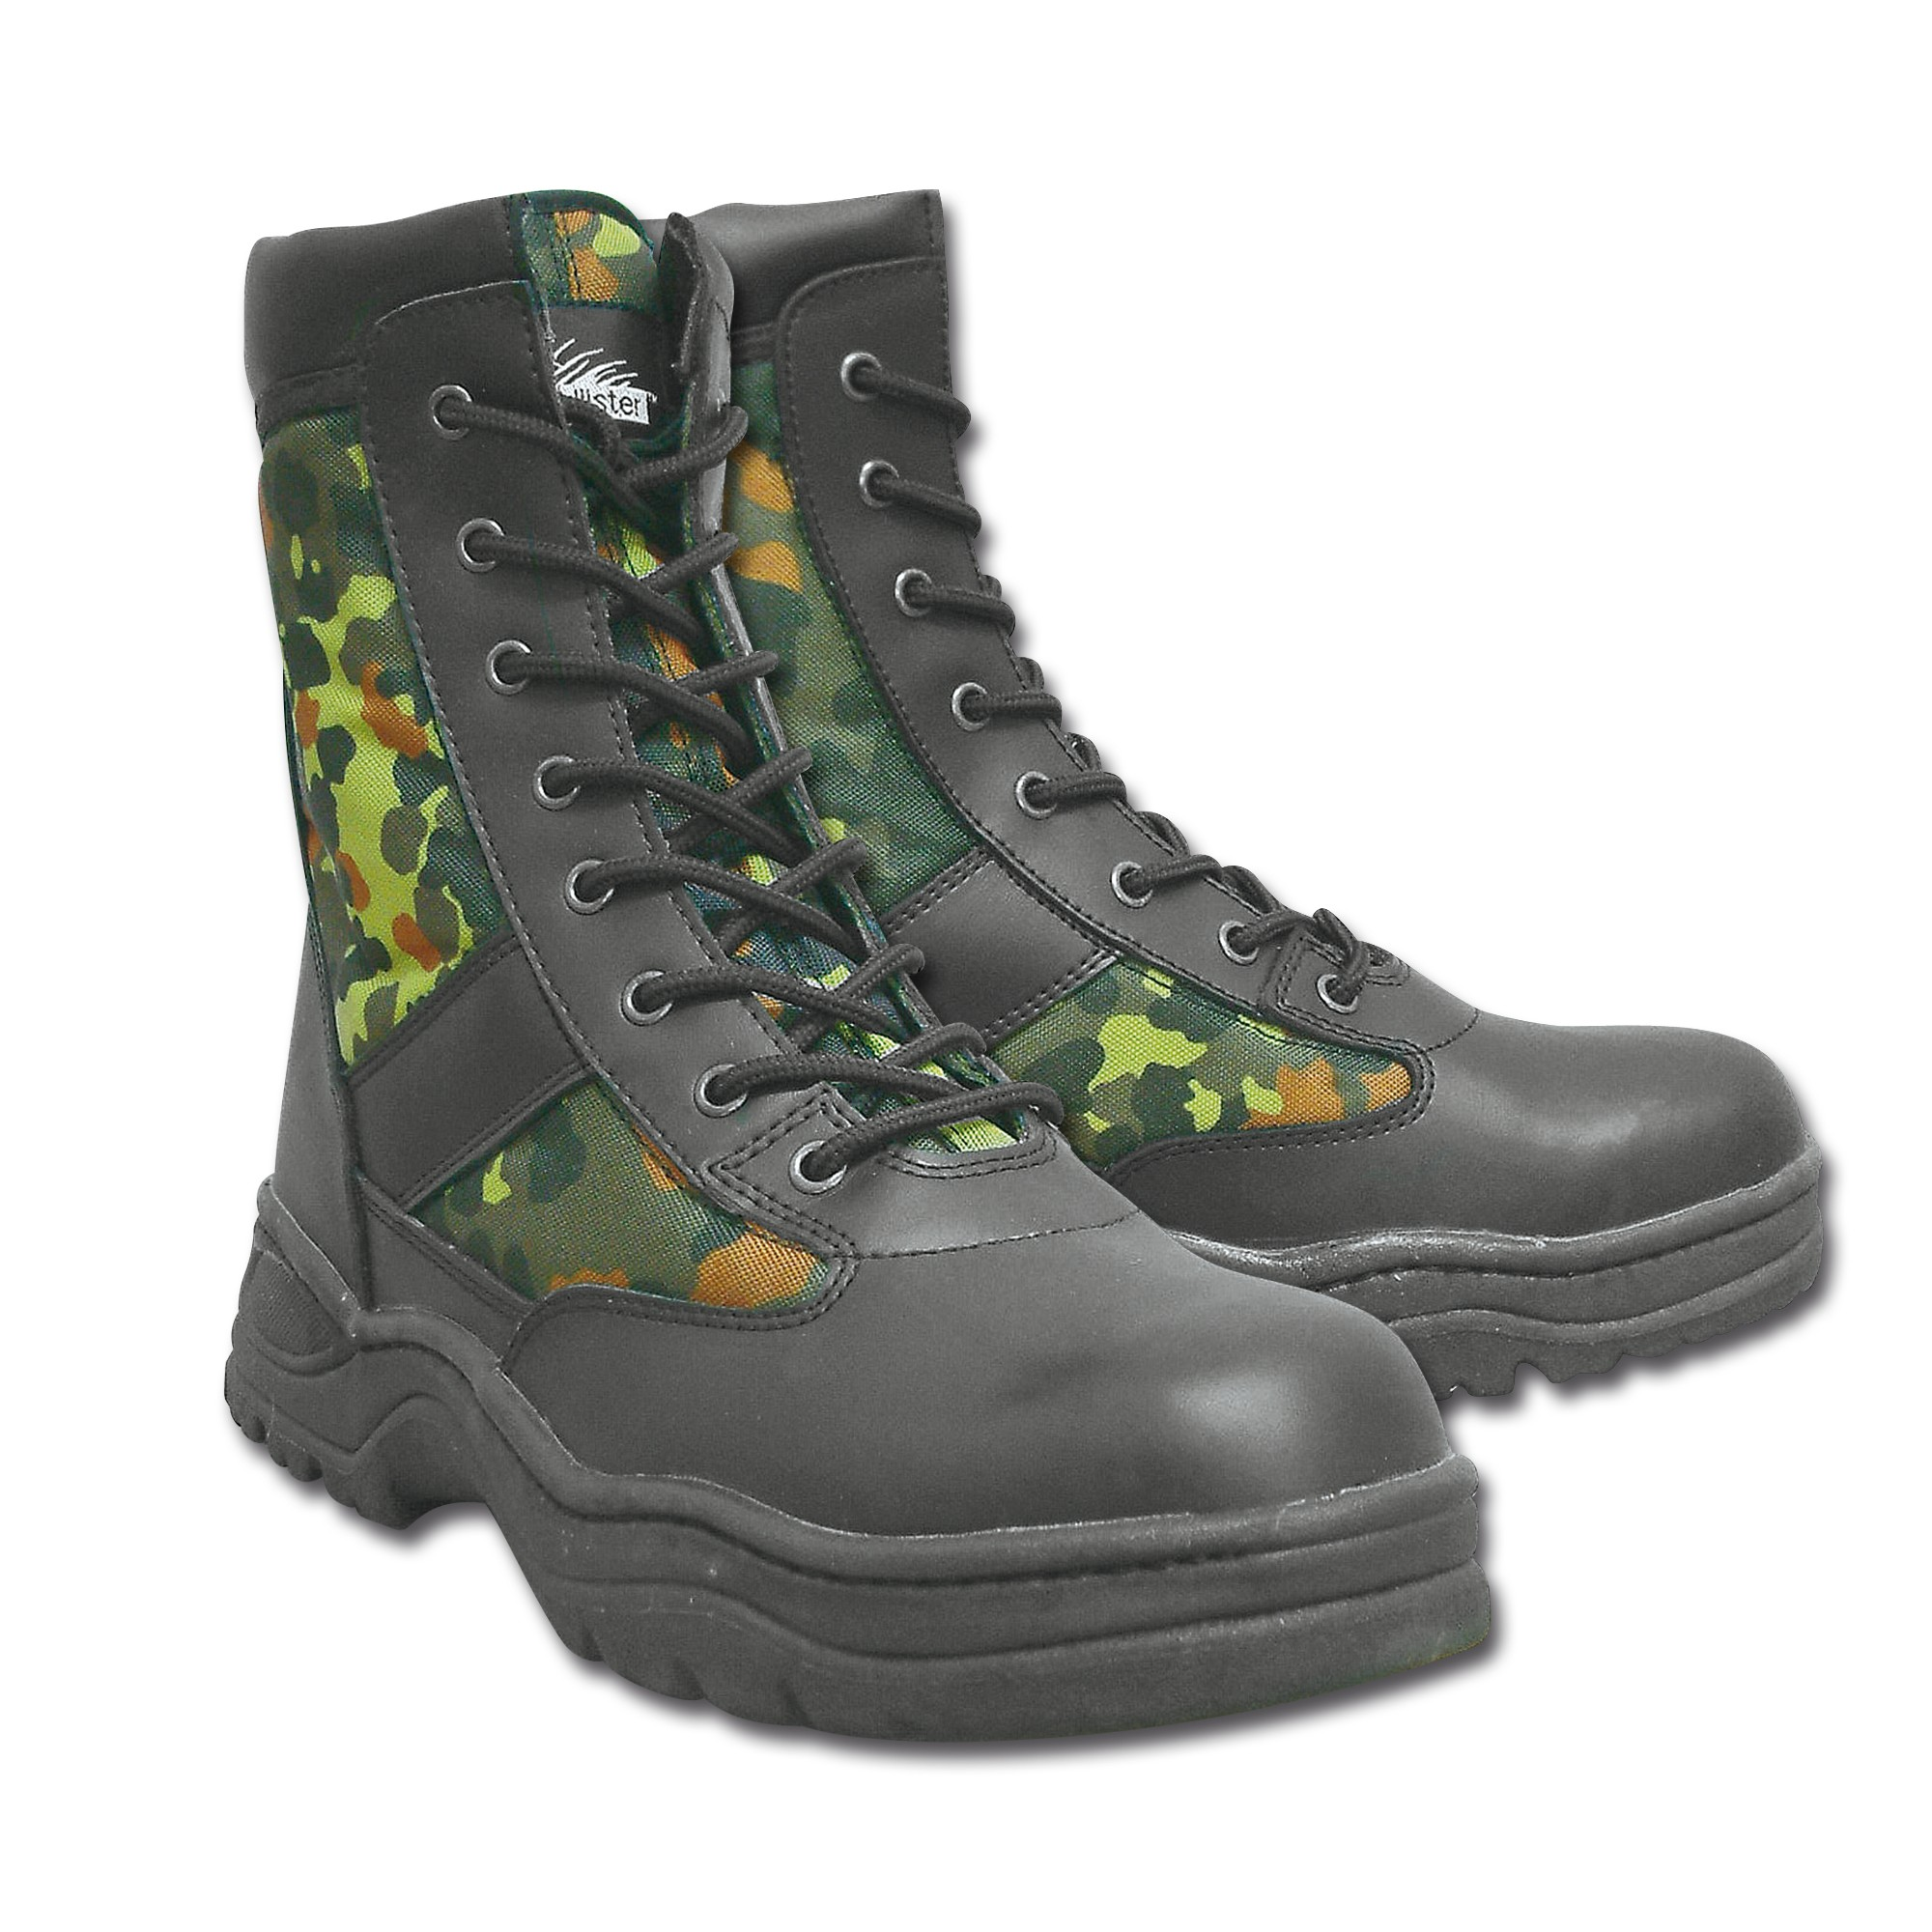 Outdoor Boots flecktarn